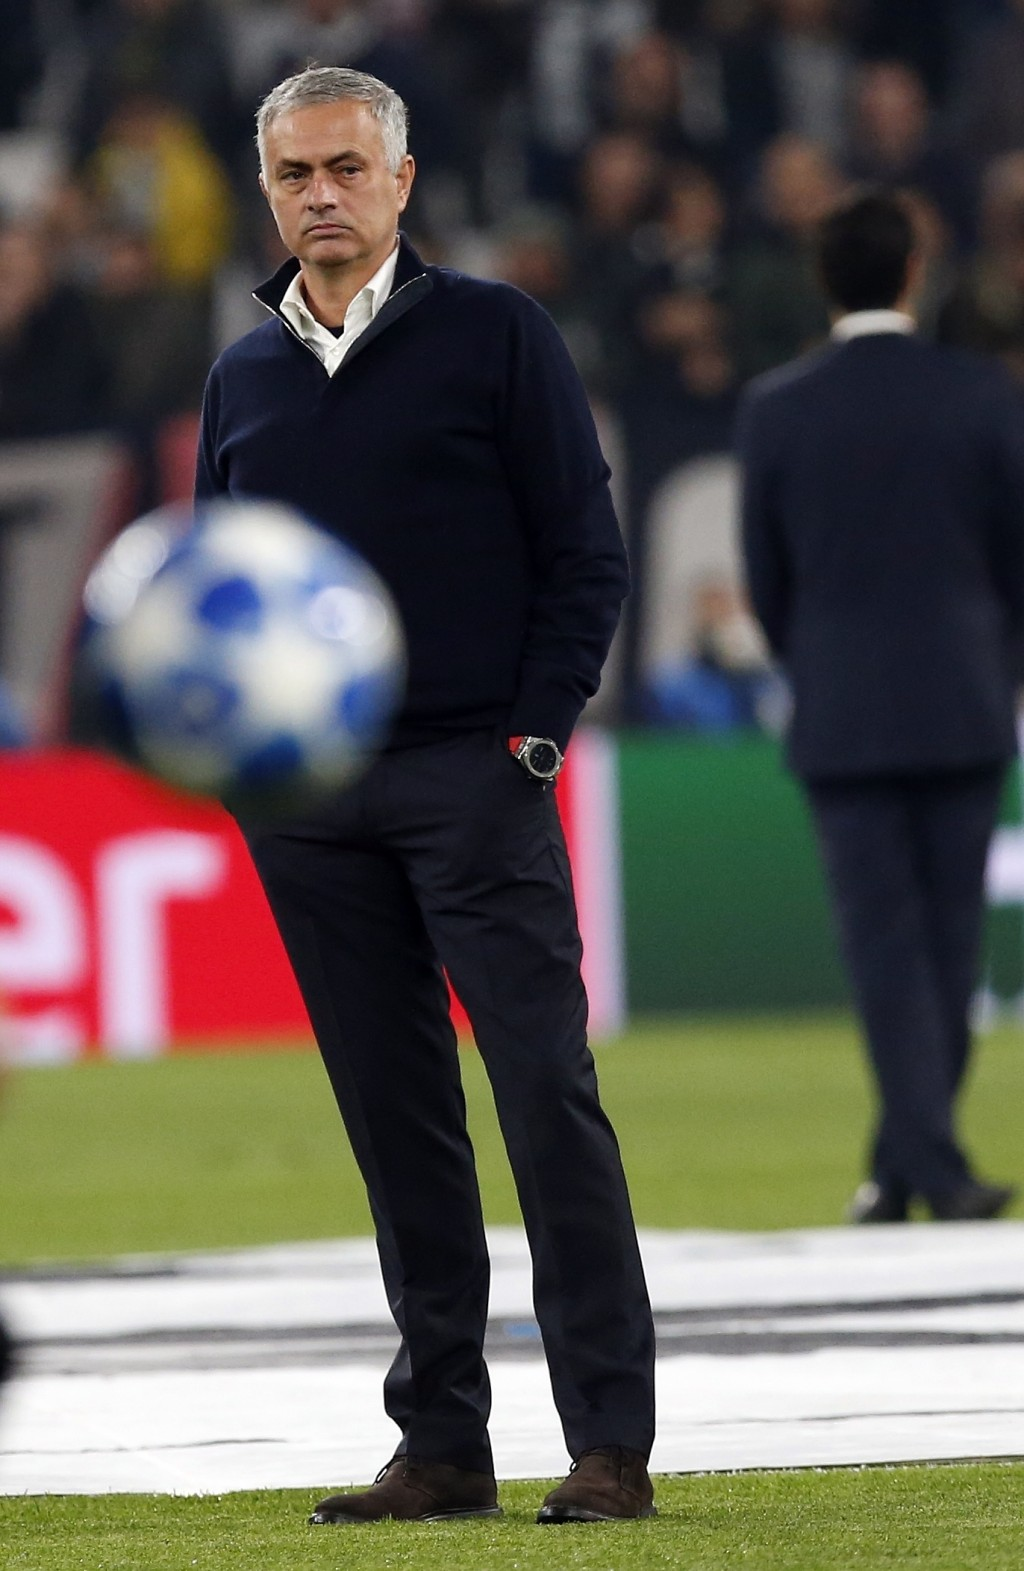 ManU coach Jose Mourinho stands on the pitch prior to the Champions League group H soccer match between Juventus and Manchester United at the Allianz ...